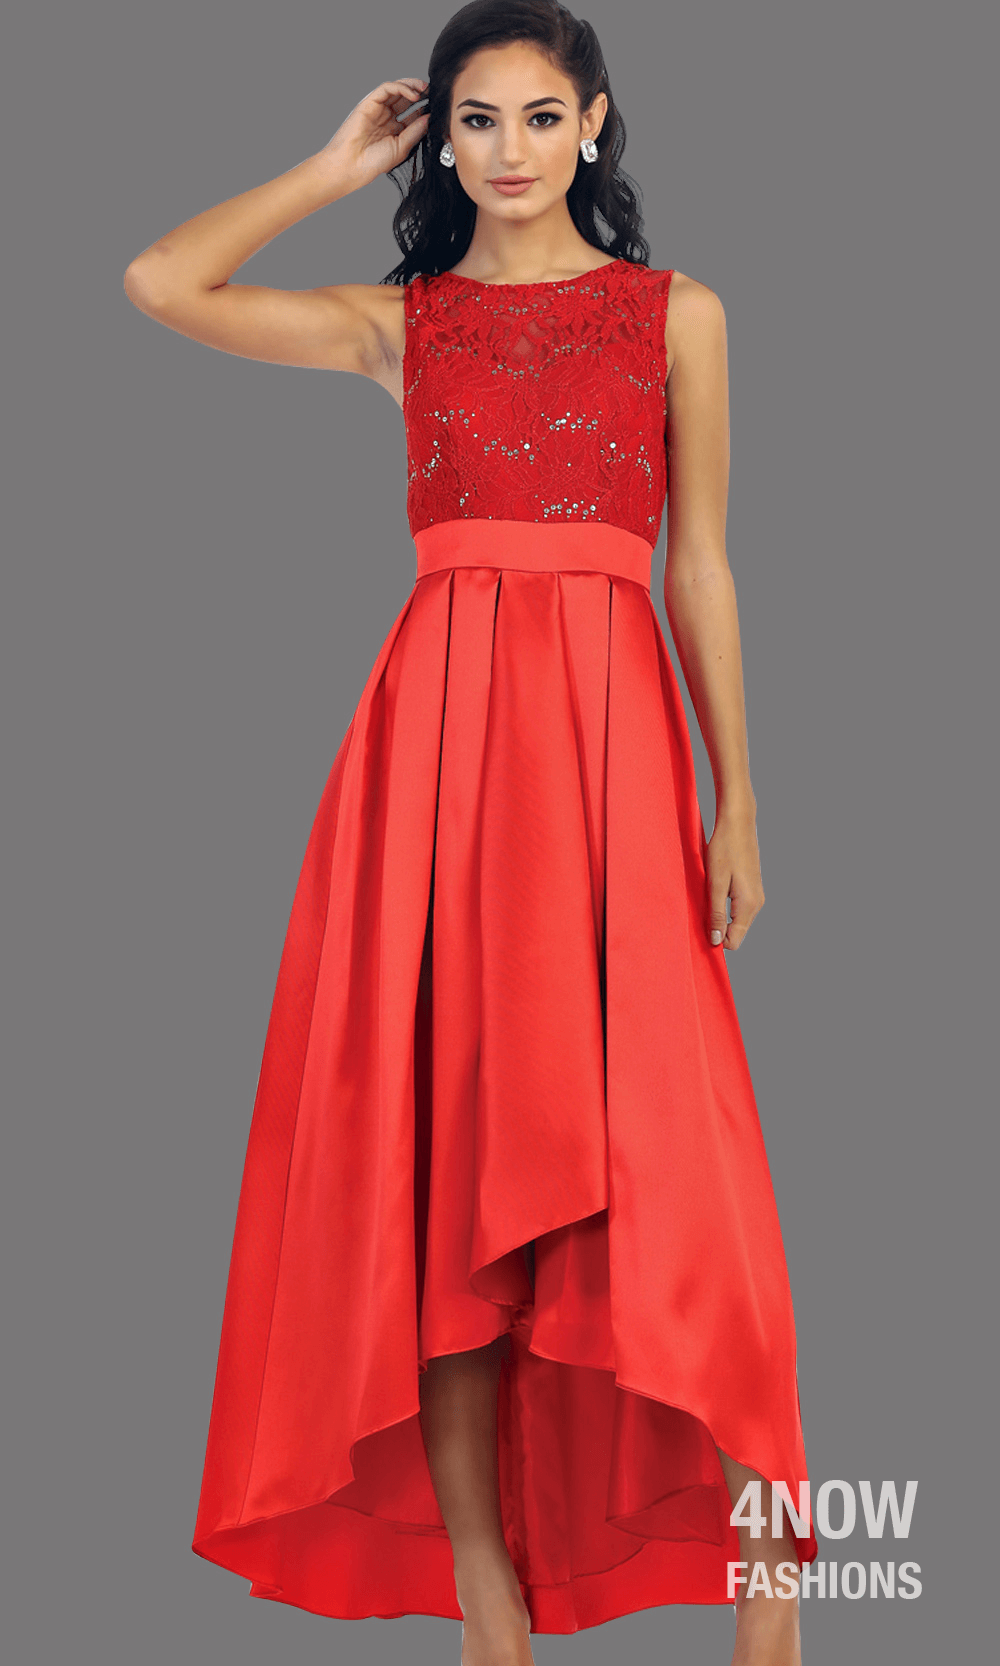 Red High Low Satin Dress with High Neck